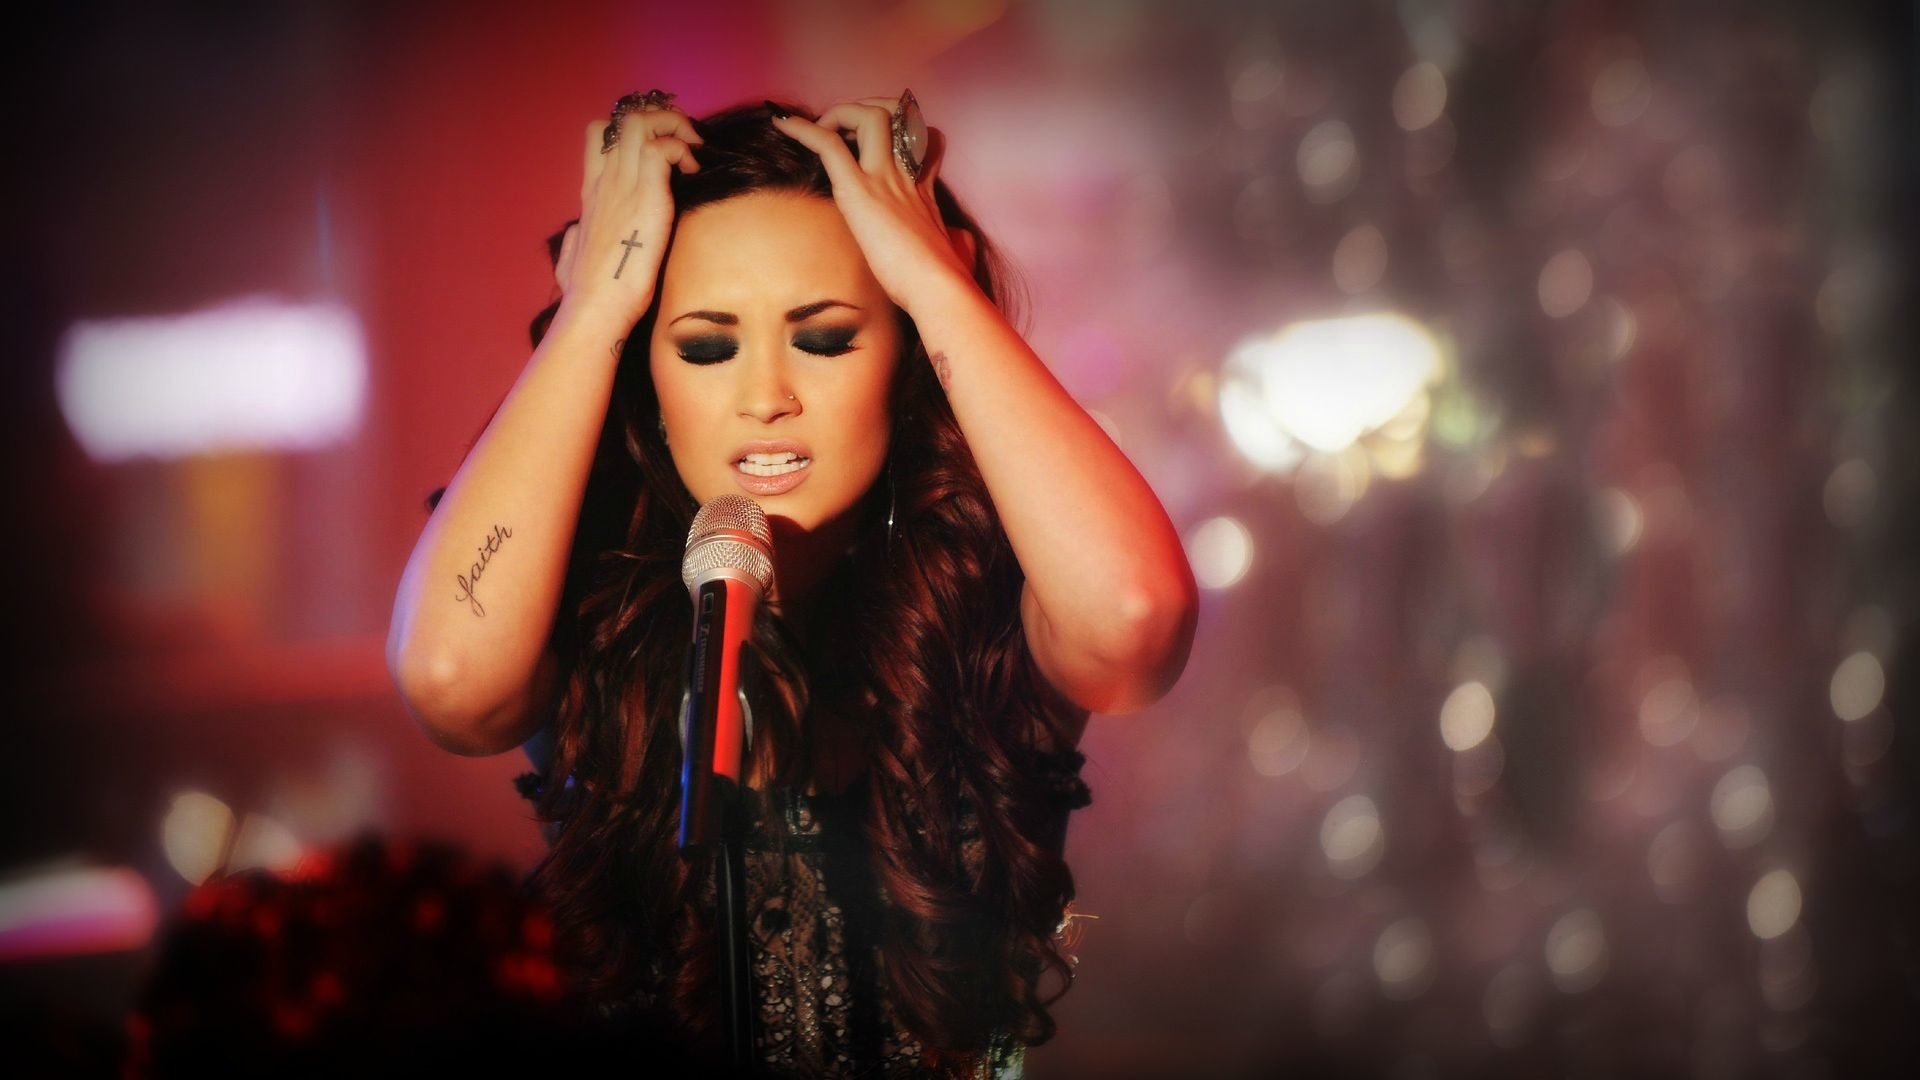 1920x1200 Cool Collections Of Demi Lovato Wallpapers HDFor Desktop Laptop And Mobiles Here You Can Download More Than 5 Million Photography